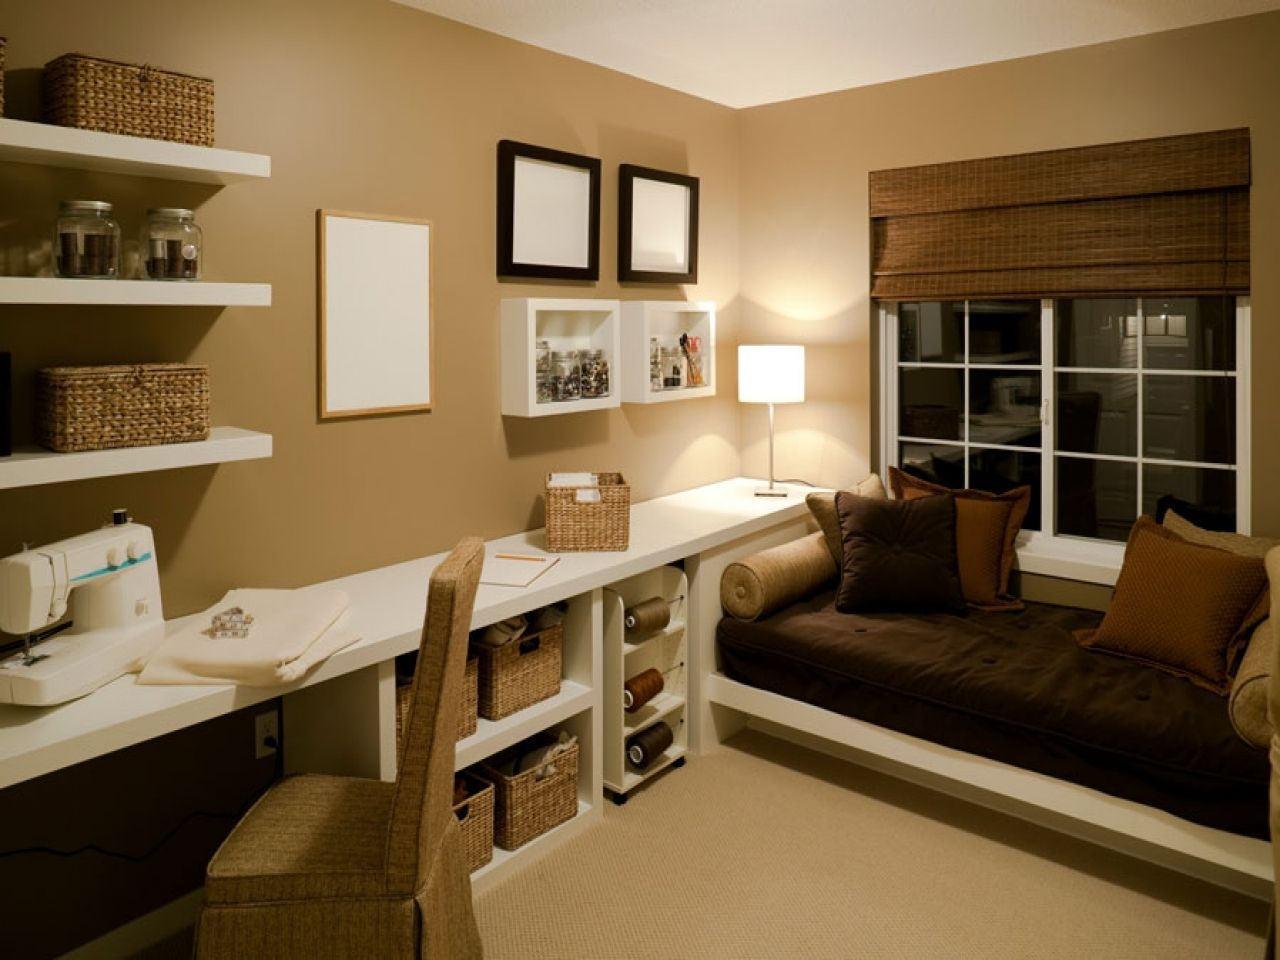 Home Office Spare Bedroom Bedroom Ideas Second Bedroom Office In 2020 Guest Bedroom Office Guest Room Office Home Office Design